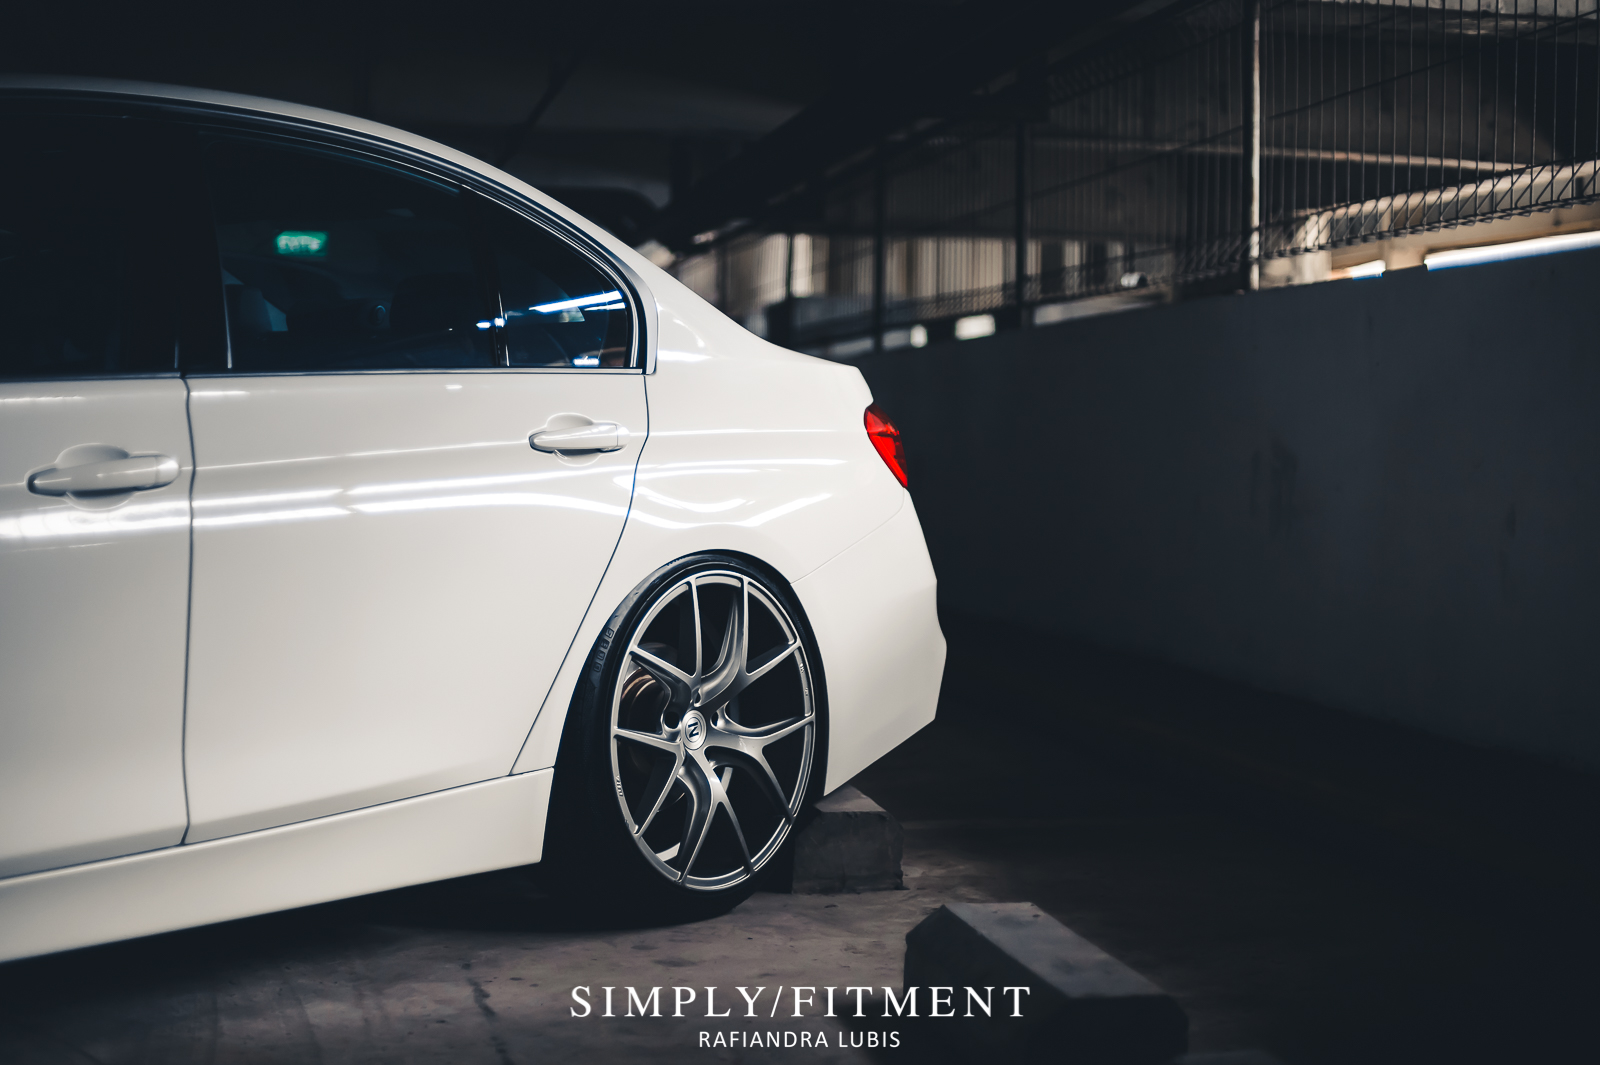 LOWFITMENT DAY 14 - DAY 2 14 NOVEMBER 2020